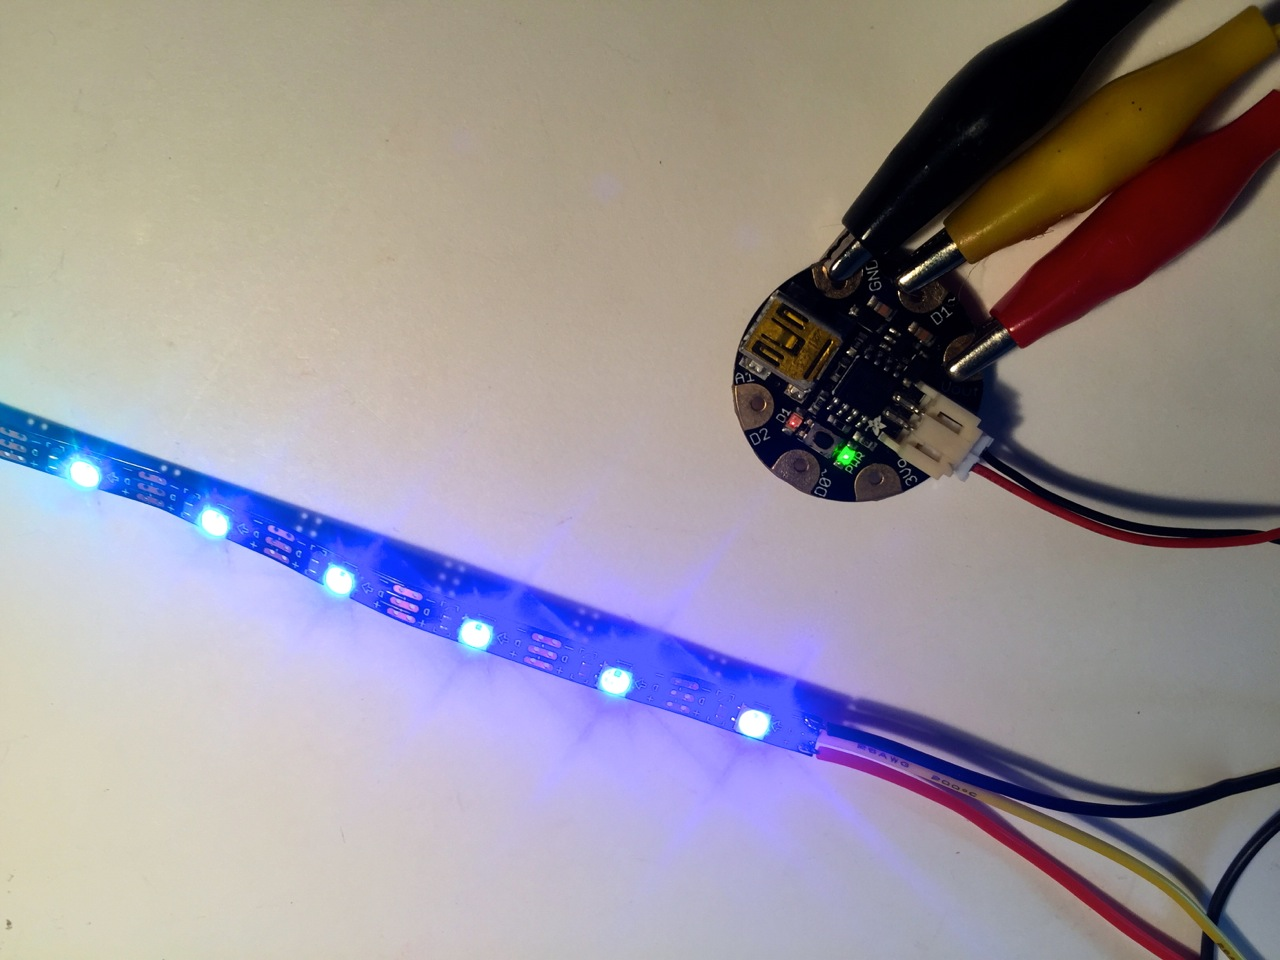 led_strips_neopixel_2test.jpg